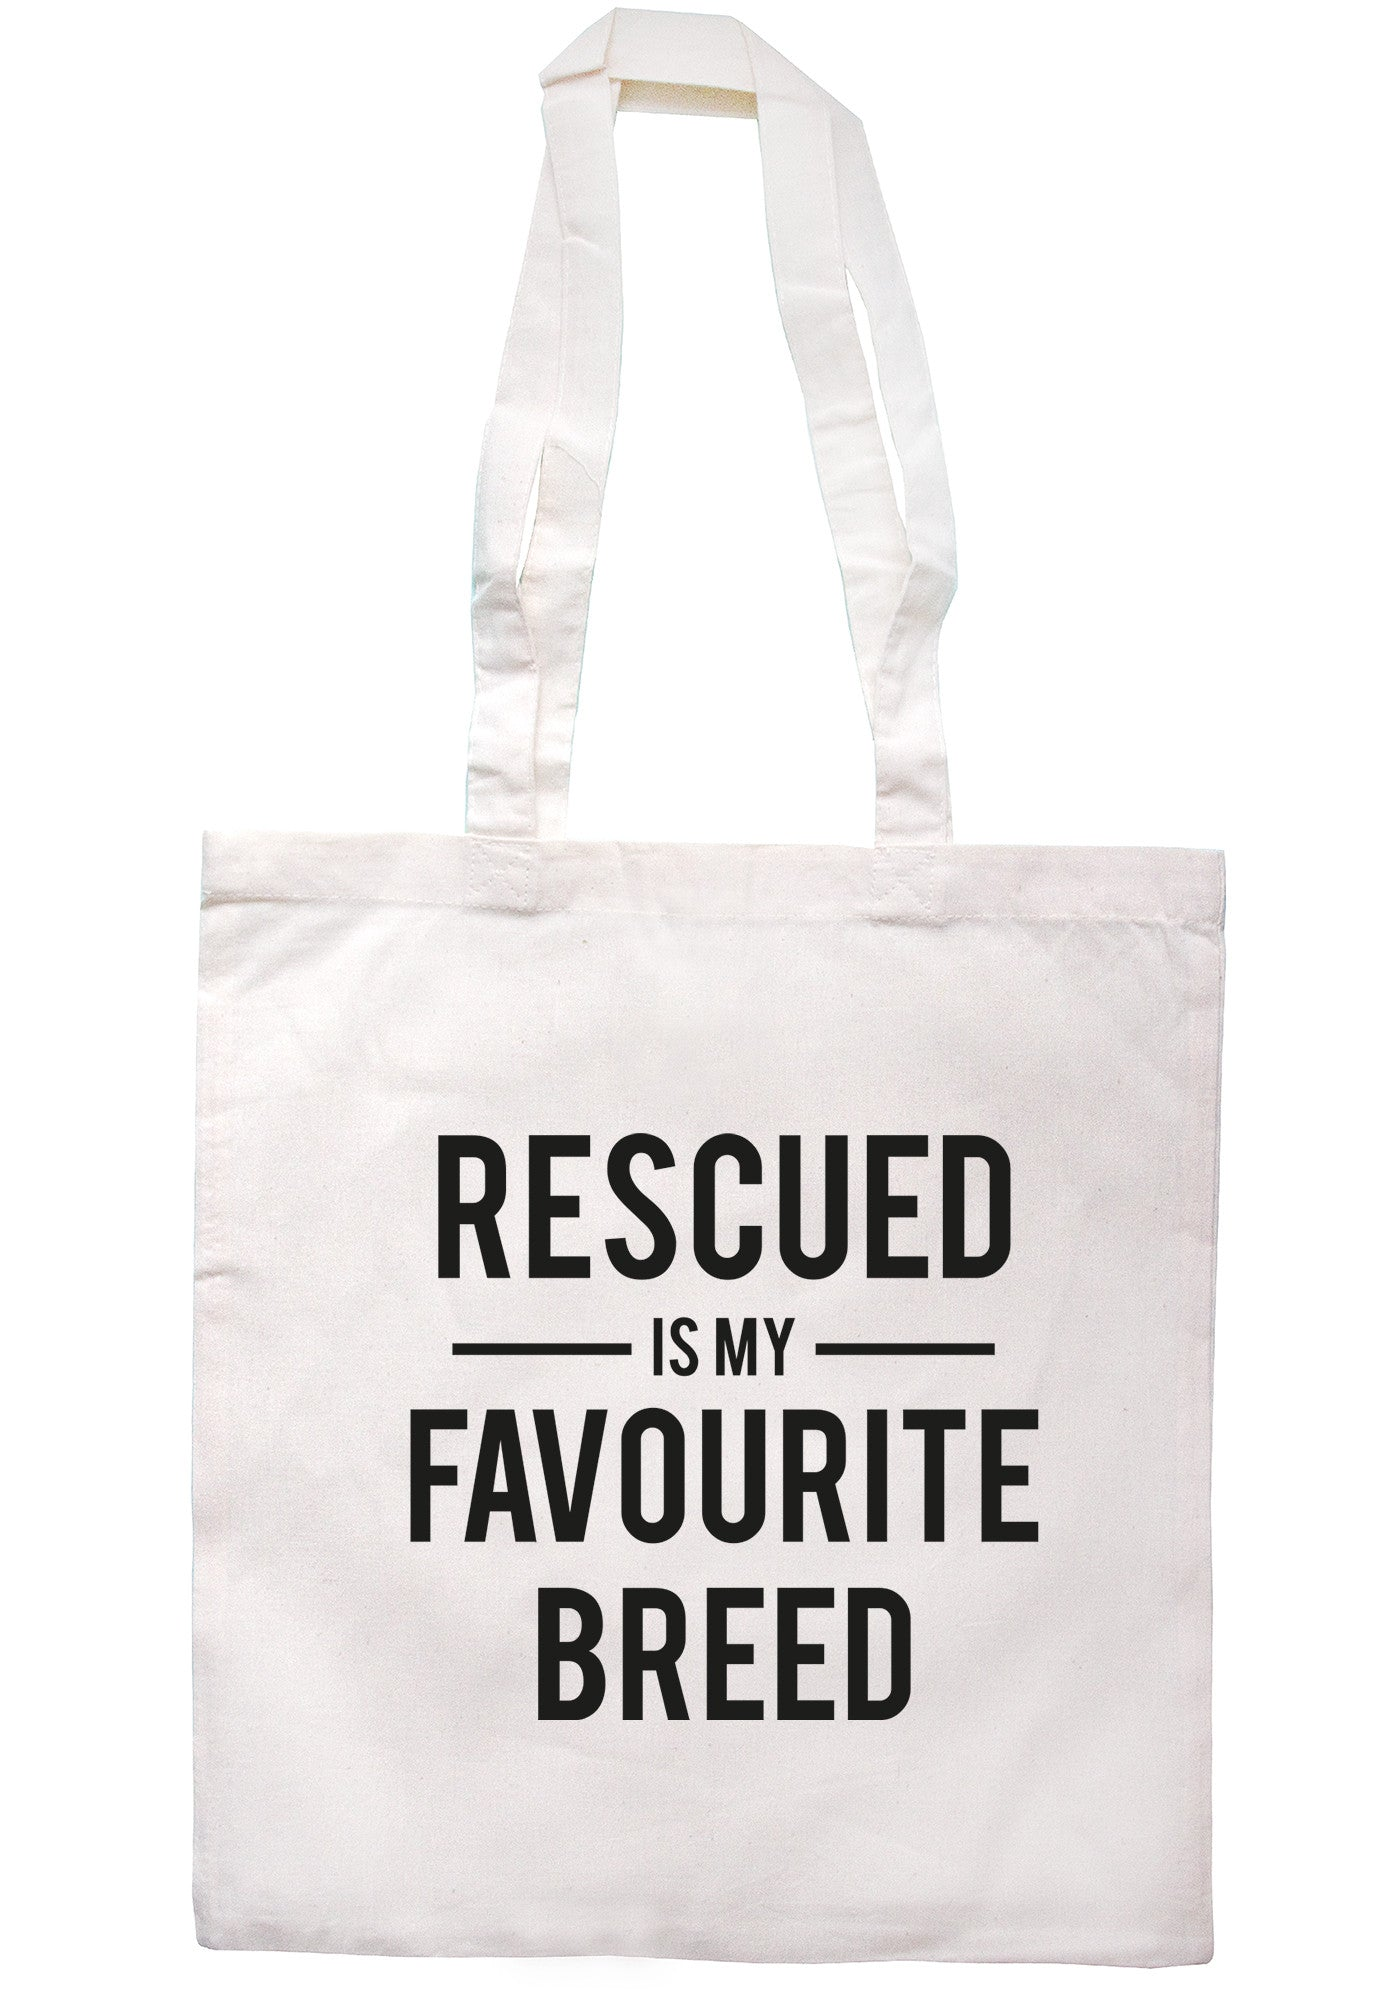 Rescued Is My Favourite Breed Tote Bag TB0453 - Illustrated Identity Ltd.